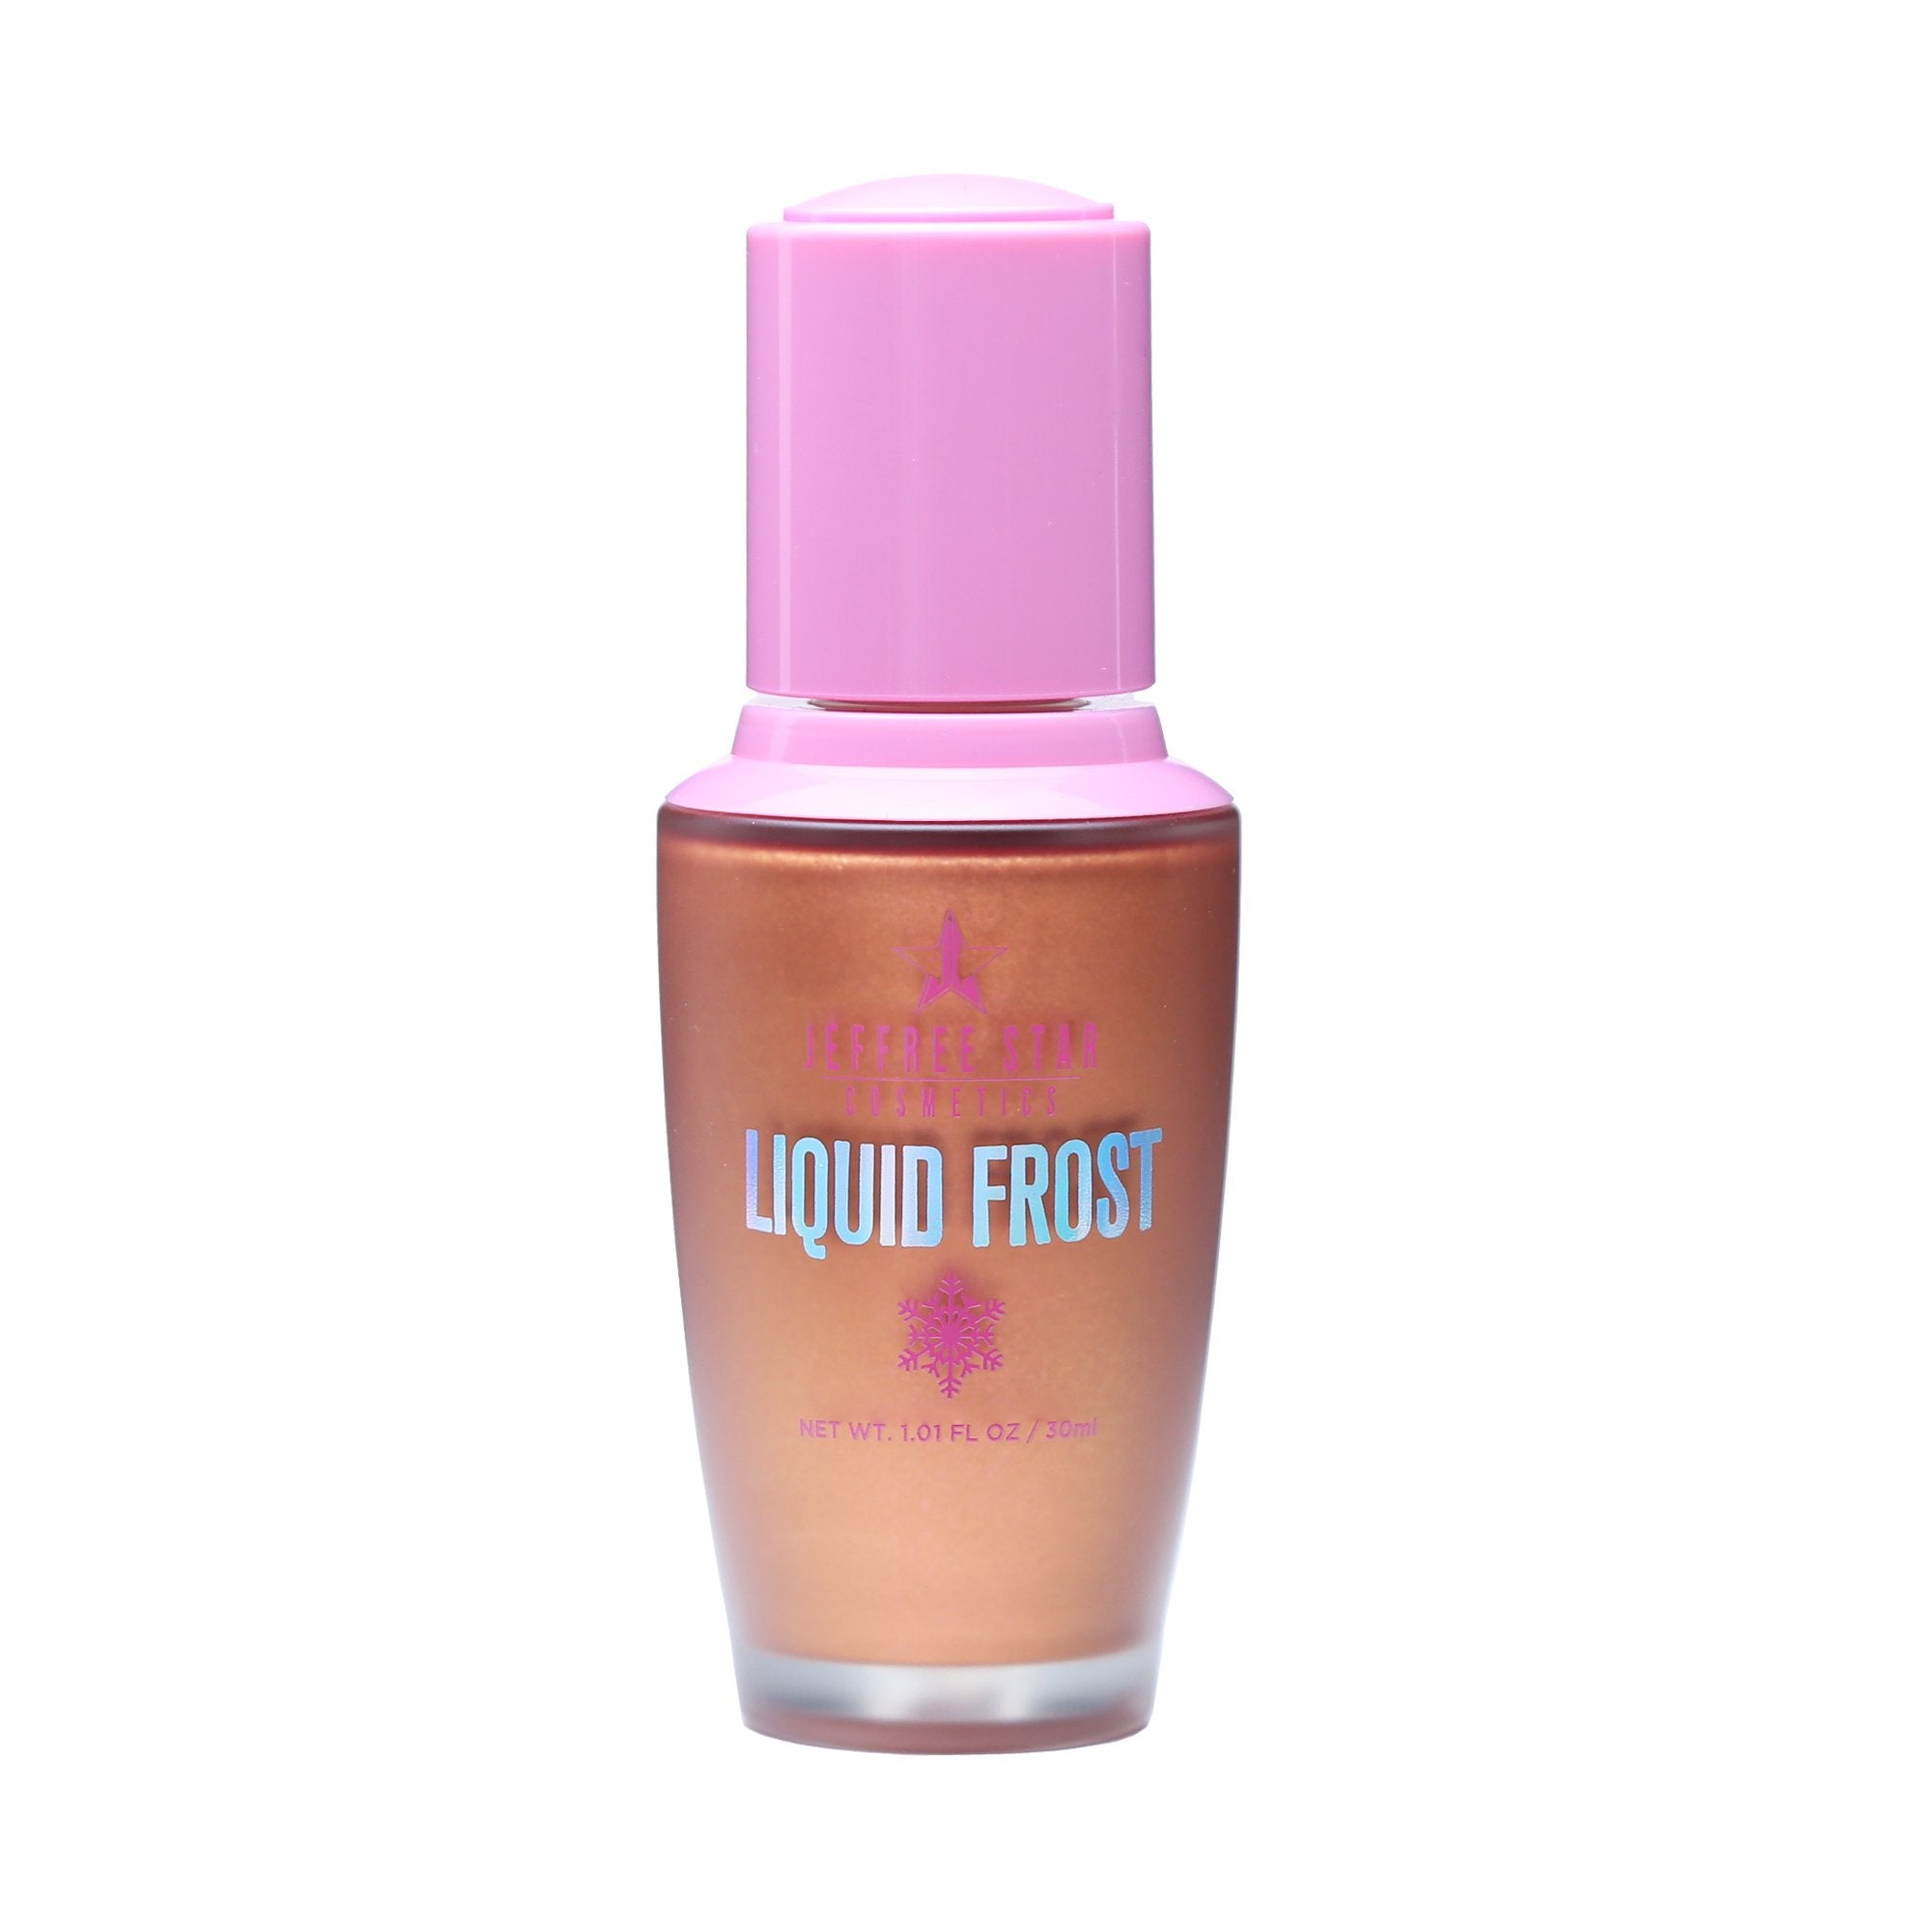 LIQUID FROST™ HIGHLIGHTER - HEAT WAVE